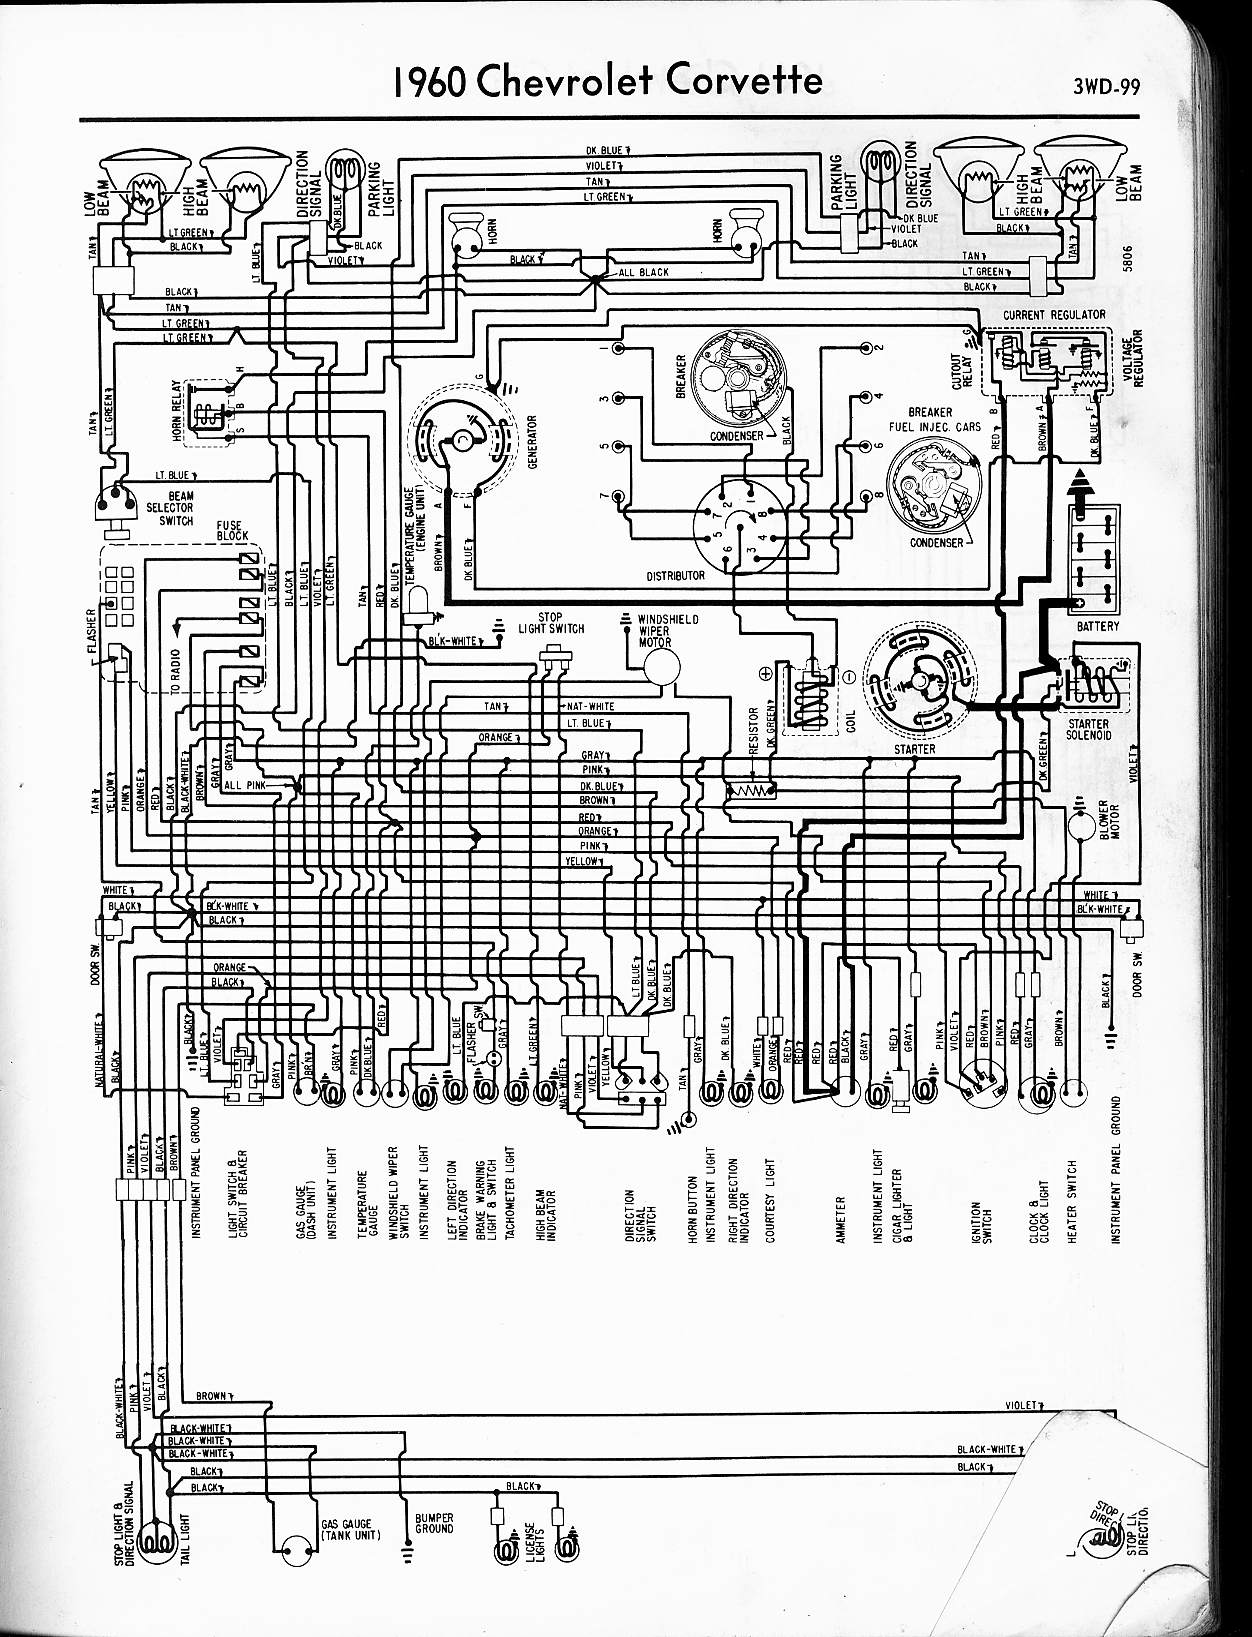 1958 chevy wiring diagram 60 apache wiring diagram wiring diagram data 1958 chevrolet wiring diagram 60 apache wiring diagram wiring